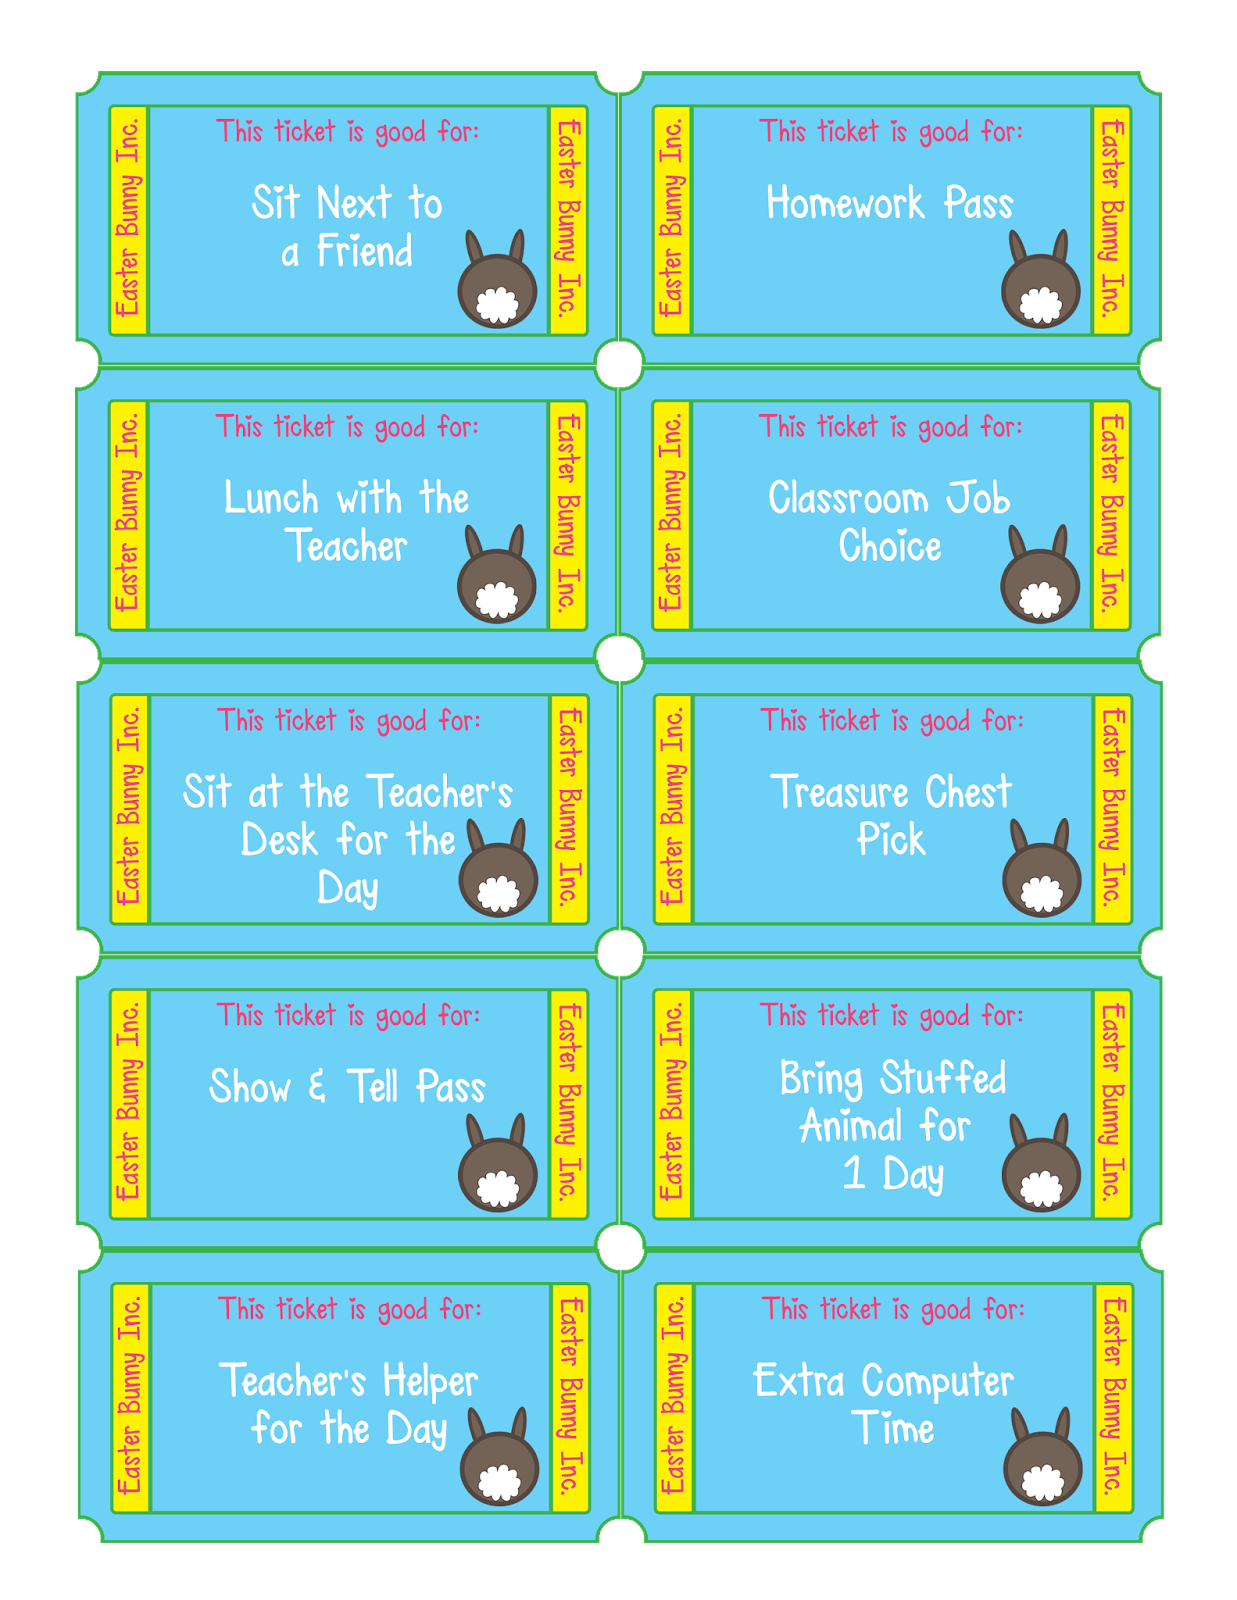 free printable easter egg tickets the perfect alternative to candy for easter egg hunts